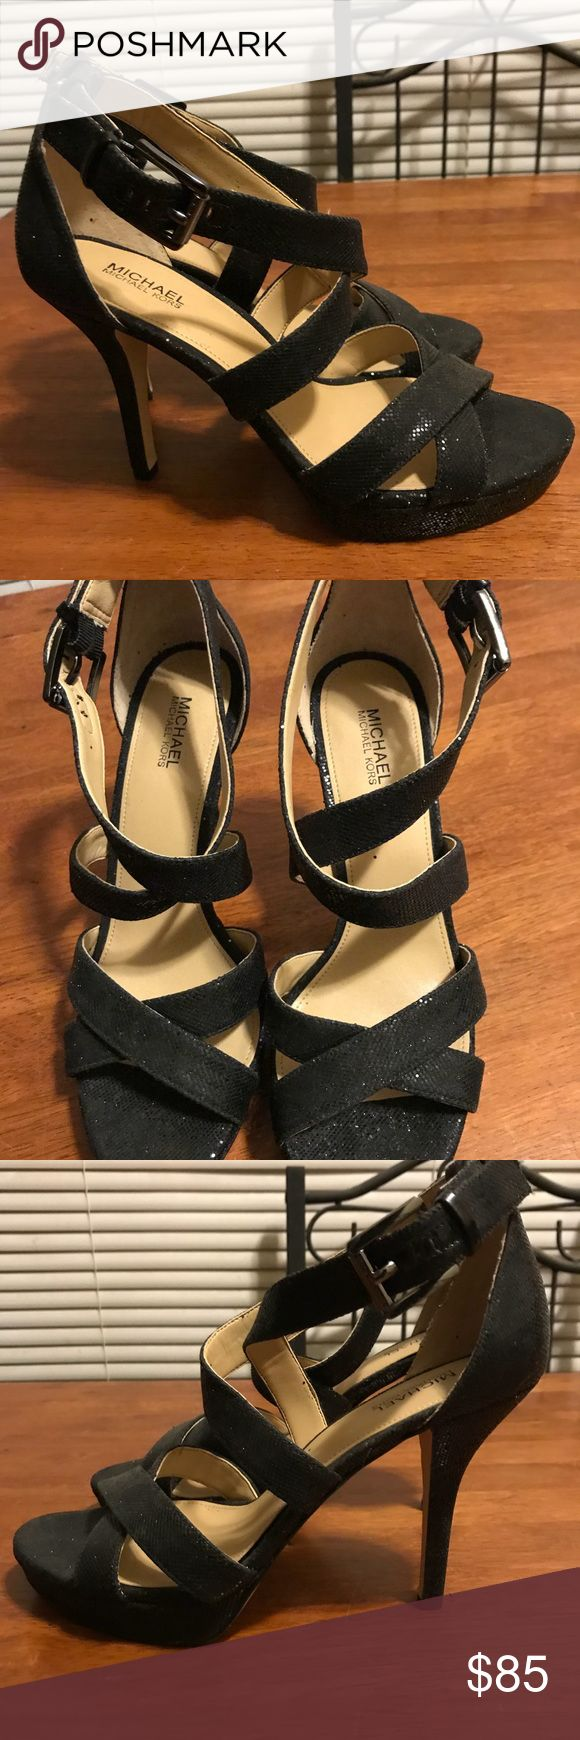 Michael Kors Evie Heels, Black Glitter Michael Kors, Heel: 4.00 inches, Material: Synthetic, Color: Black Glitter Toe-Shape: Round Toe Worn once only. Excellent Condition. No box. MICHAEL Michael Kors Shoes Heels